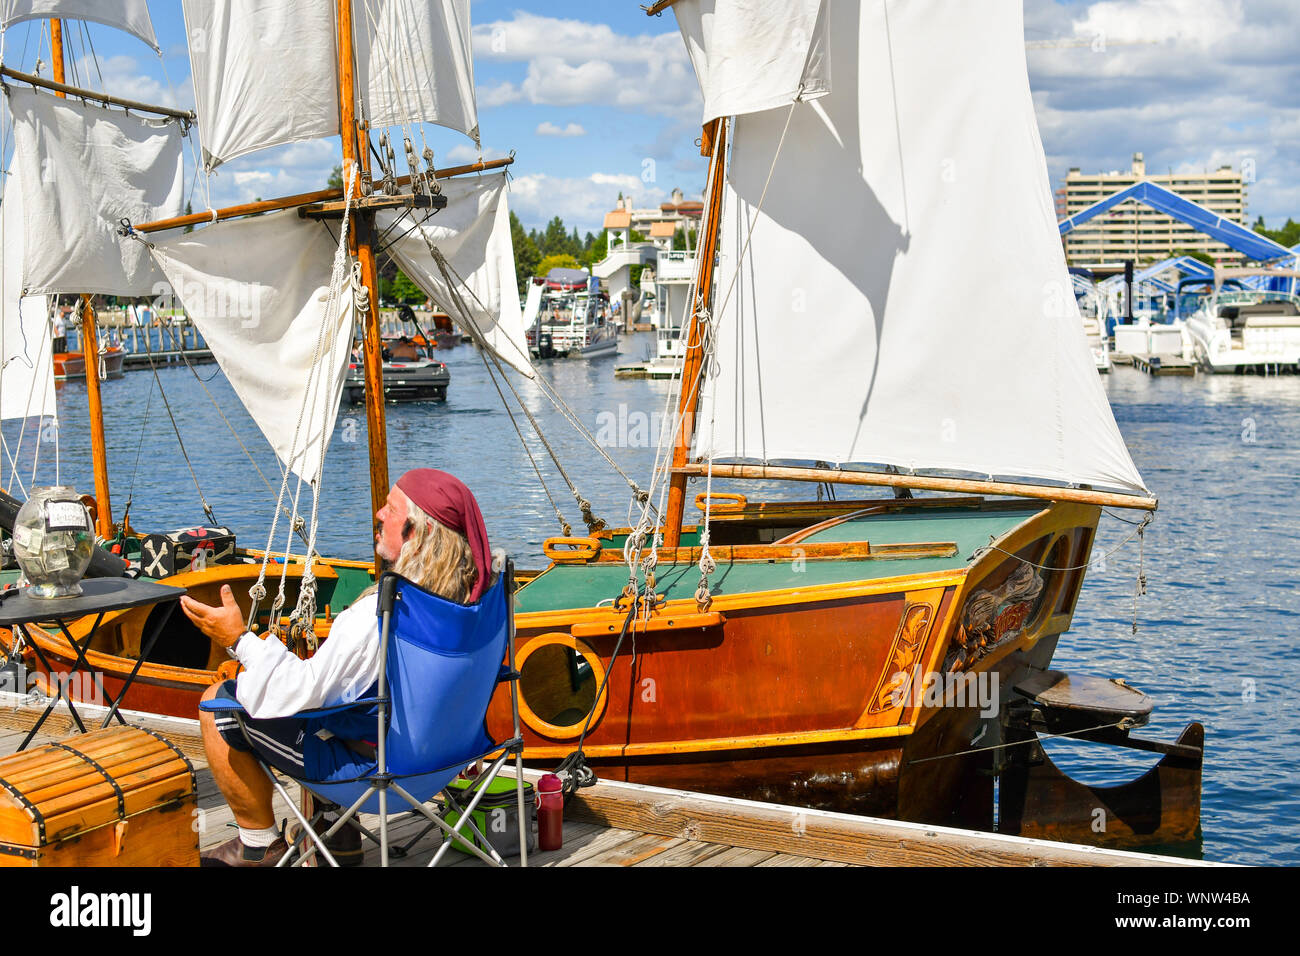 A boat owner dressed as a pirate near his miniature replica ship based on Columbus ships docked at the marina for the wooden boat show. Stock Photo